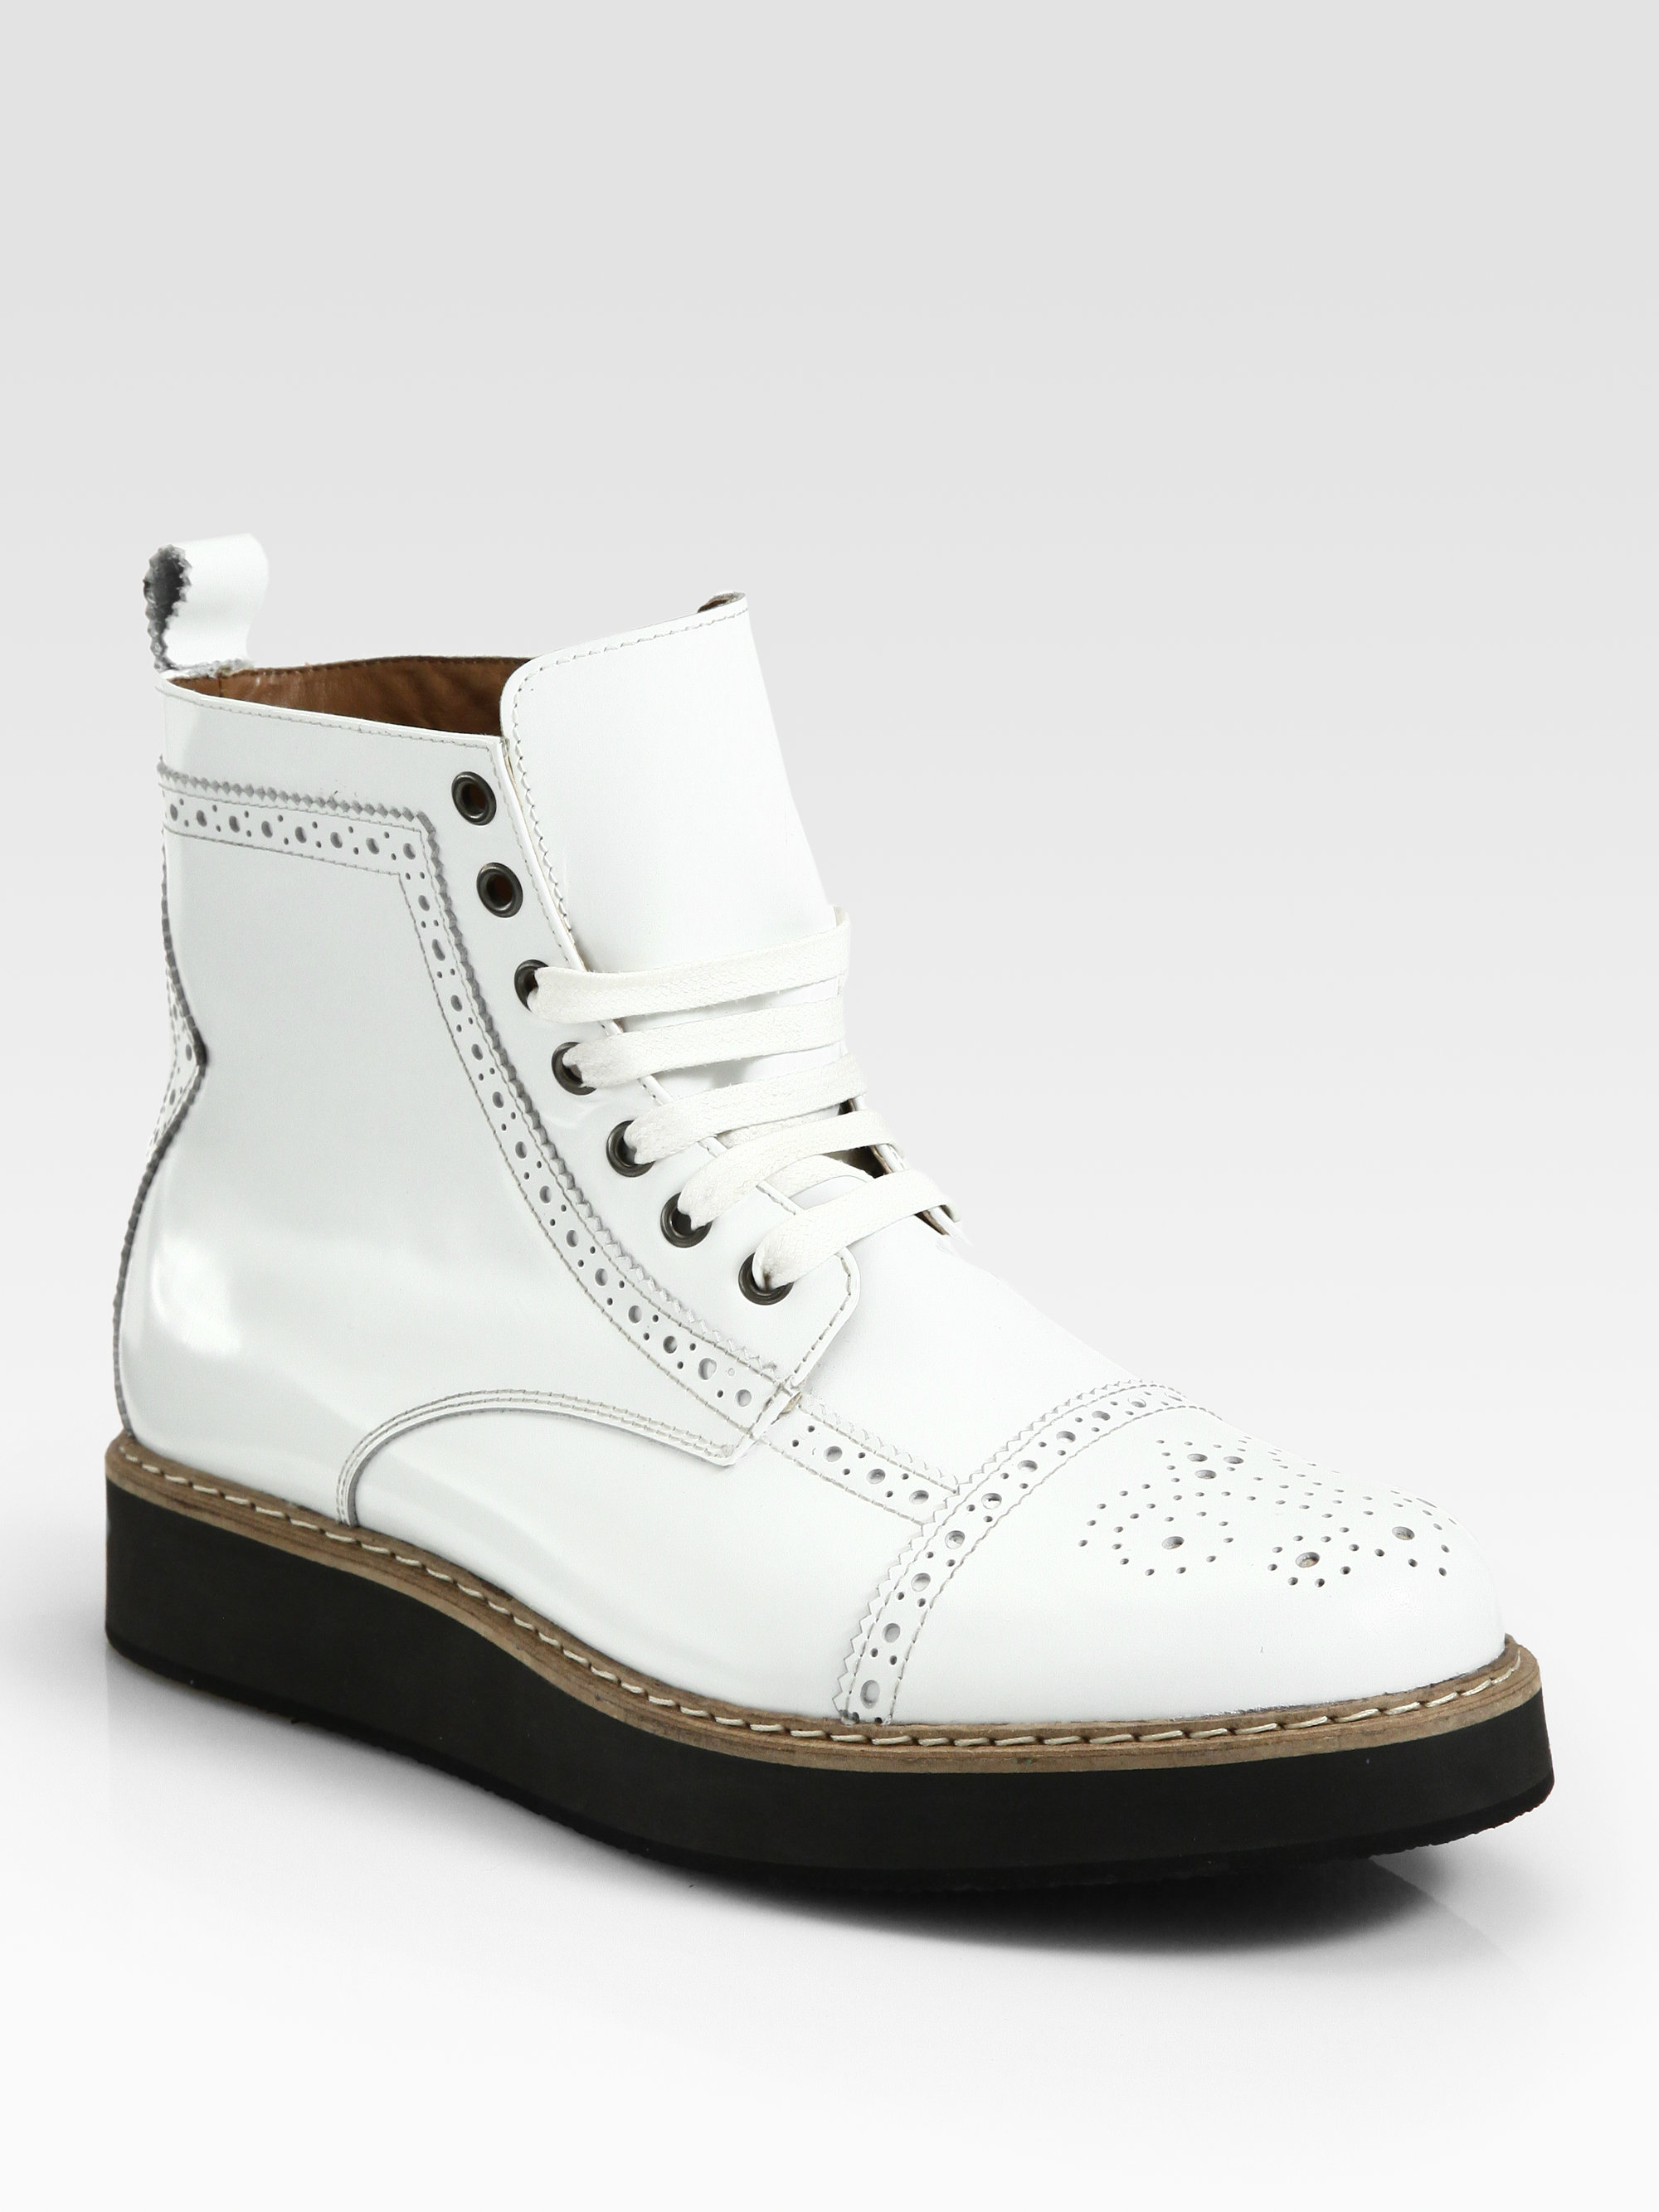 Mcq Derby Toe Brogue Boots in White for Men - Lyst